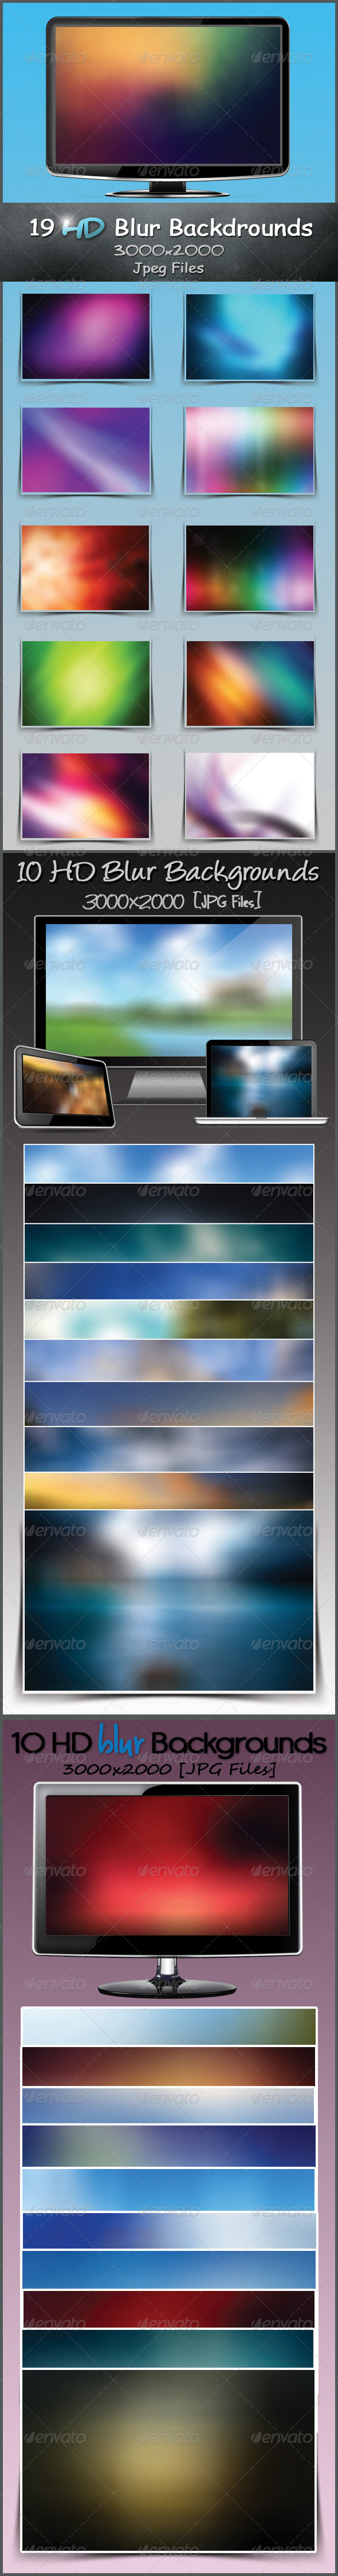 HD Blur Backgrounds Bundle - Abstract Backgrounds